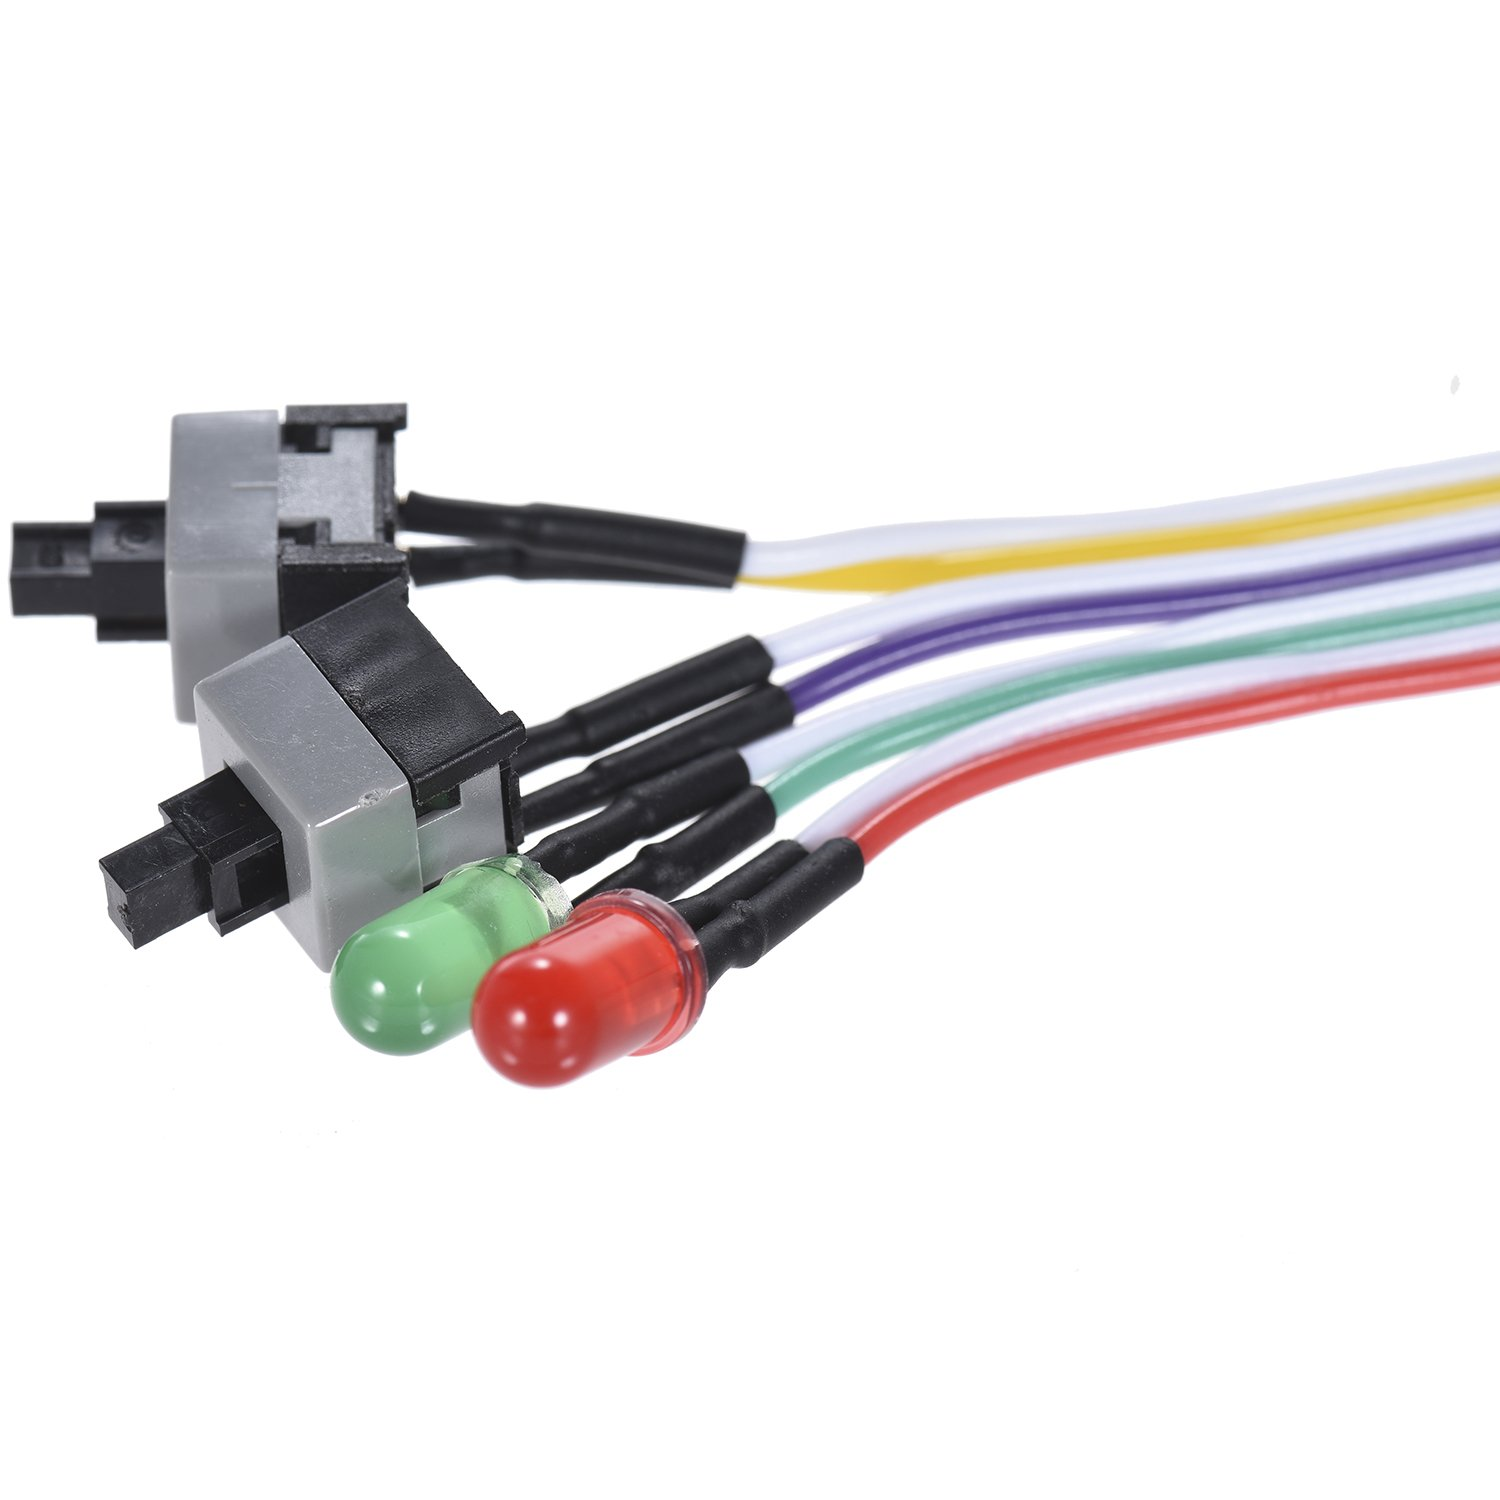 Warmstor 2-Pack Computer Case LED Light Red Green ATX Power Supply Reset HDD Switch Cable 27-inch Long ATX Case Front Bezel Wire Kit by Warmstor (Image #4)